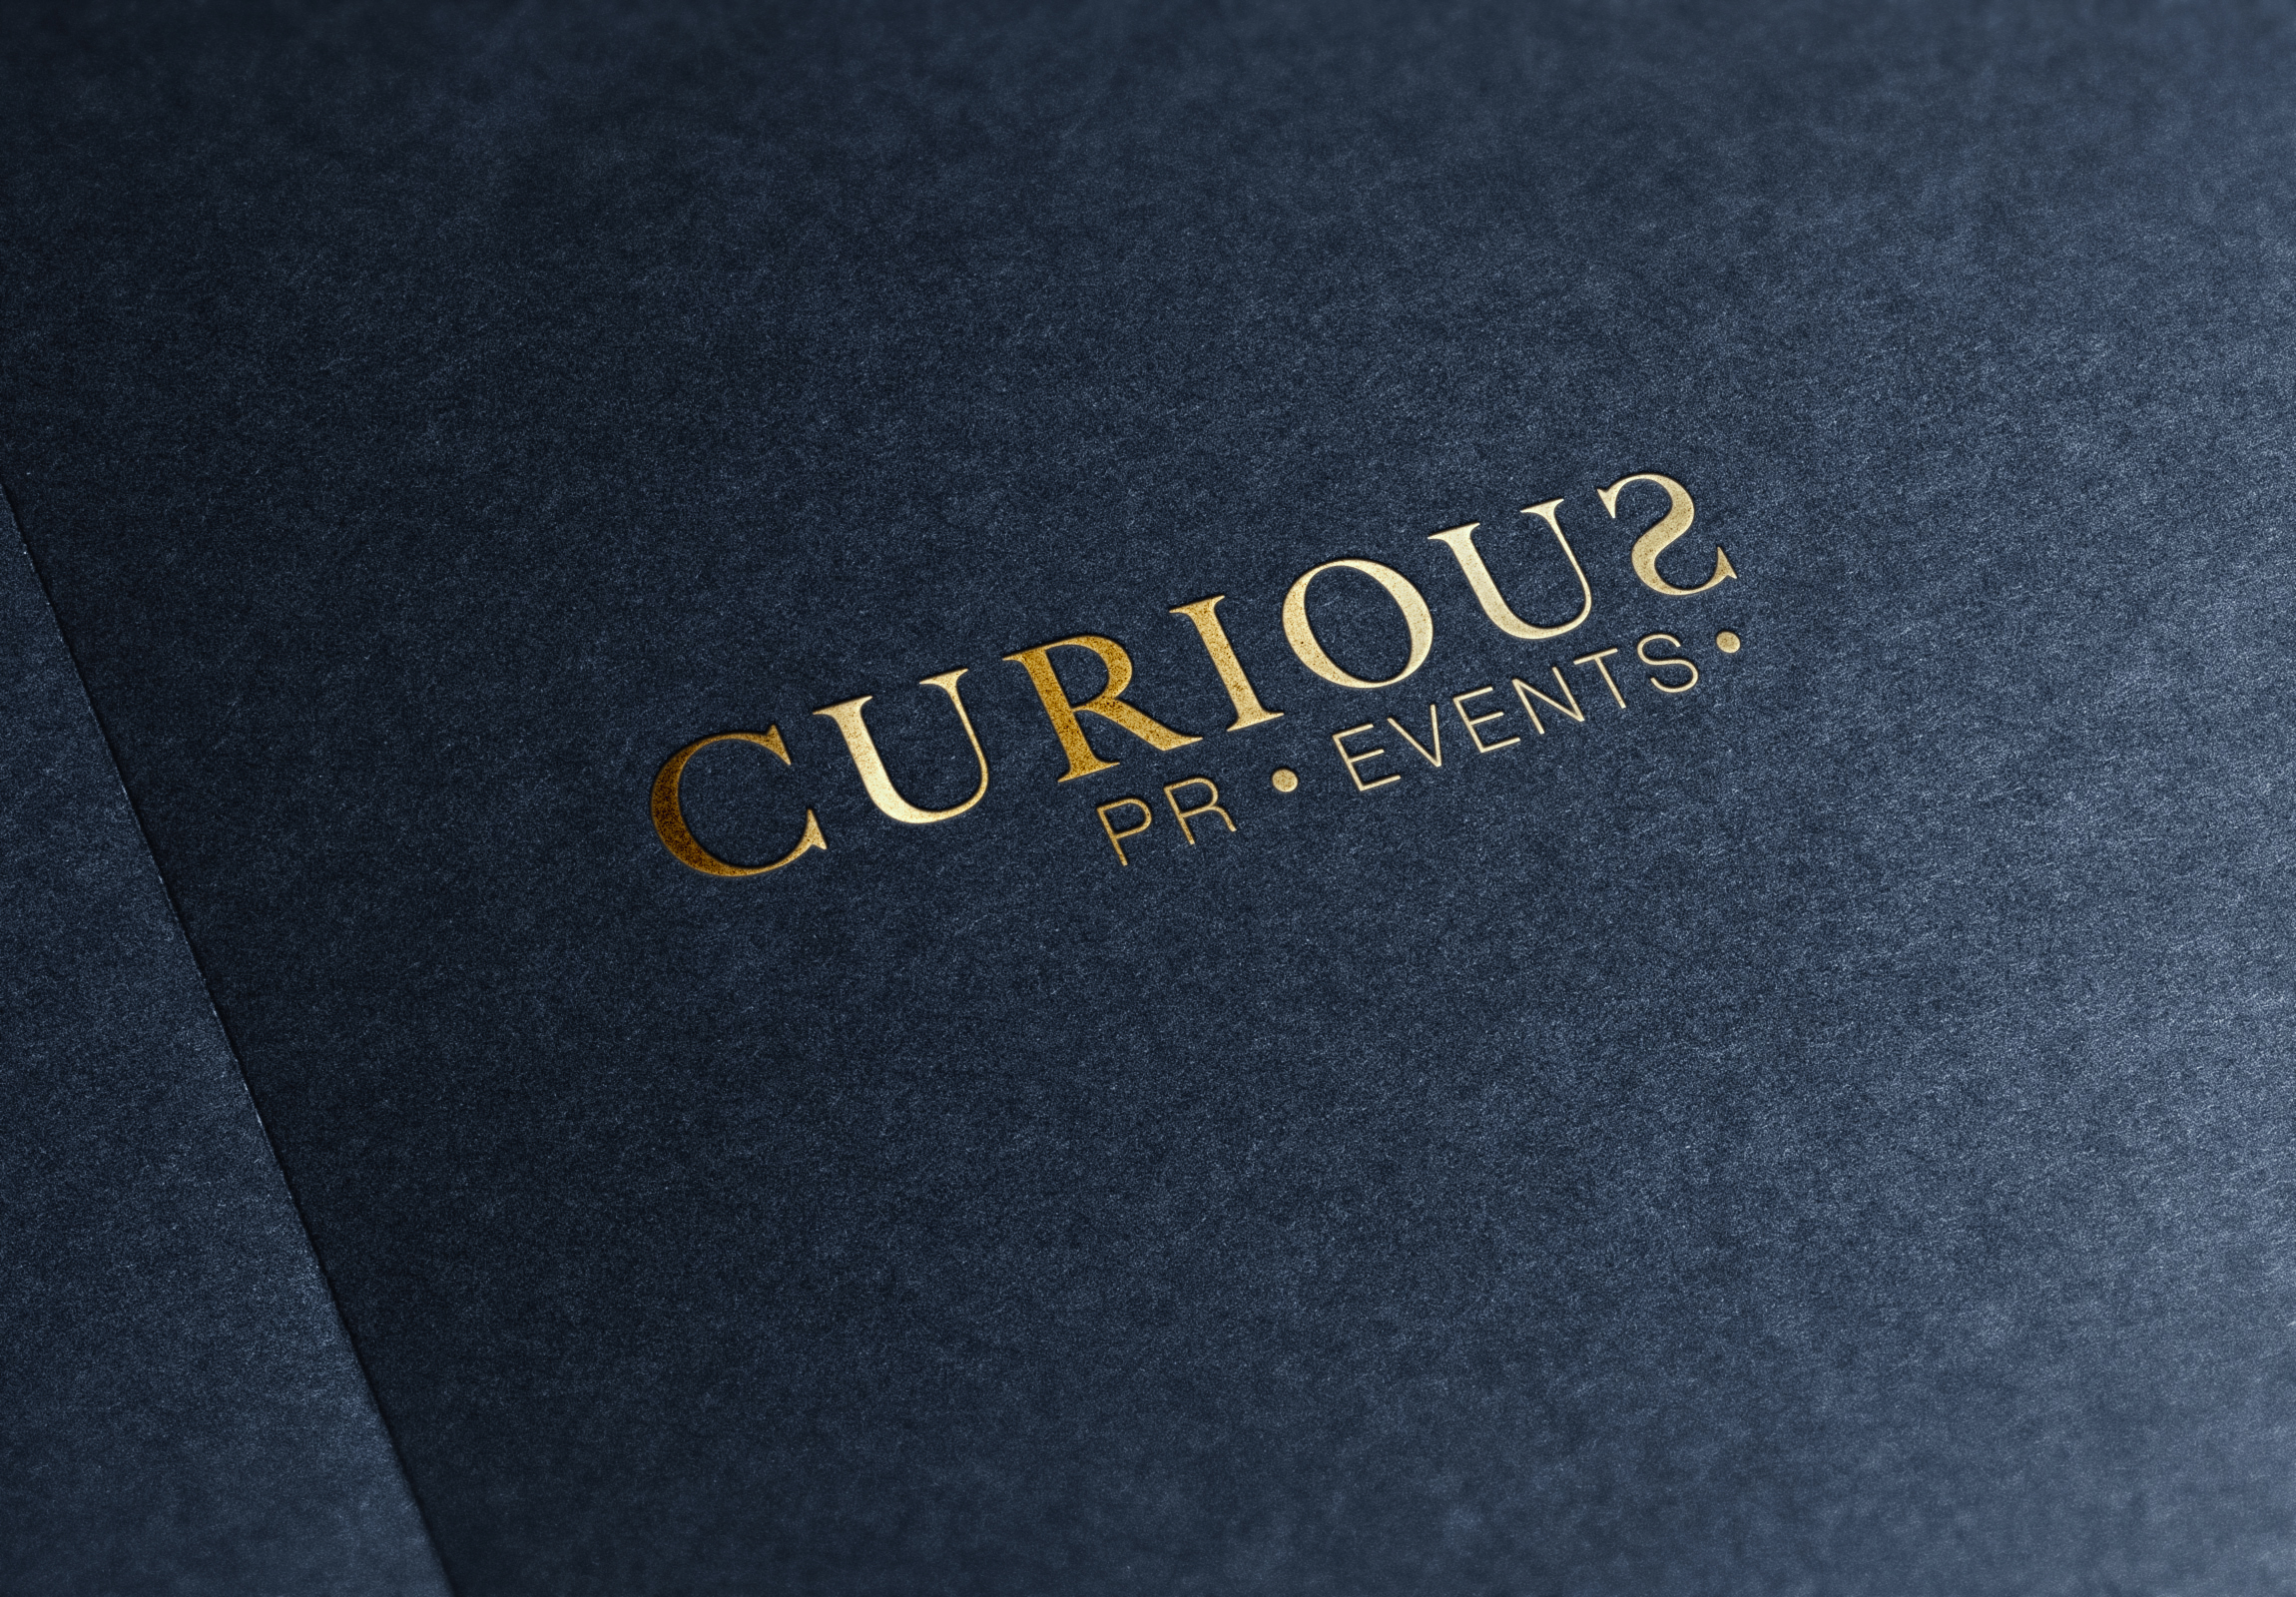 Farrah & Pearce - Curious PR and Events Logotype Printed Paper.jpg